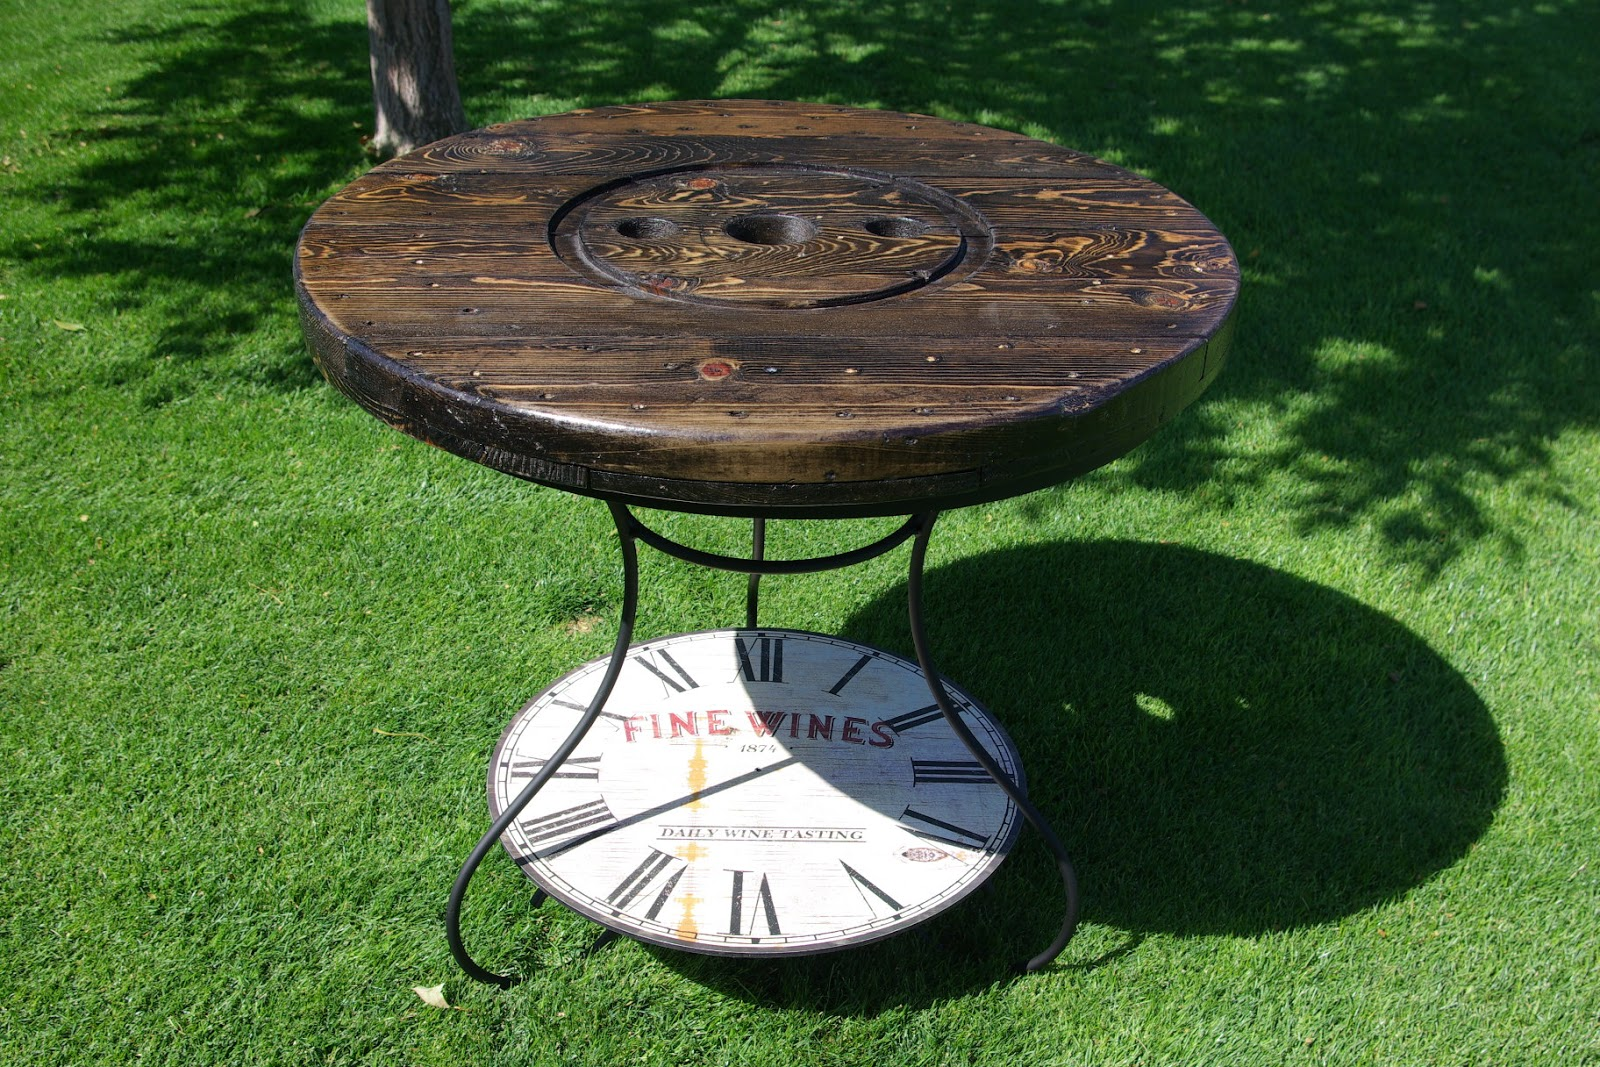 exciting cable spool kitchen table | Reclaimed Rustics: WIRE SPOOL KITCHEN/PATIO TABLE